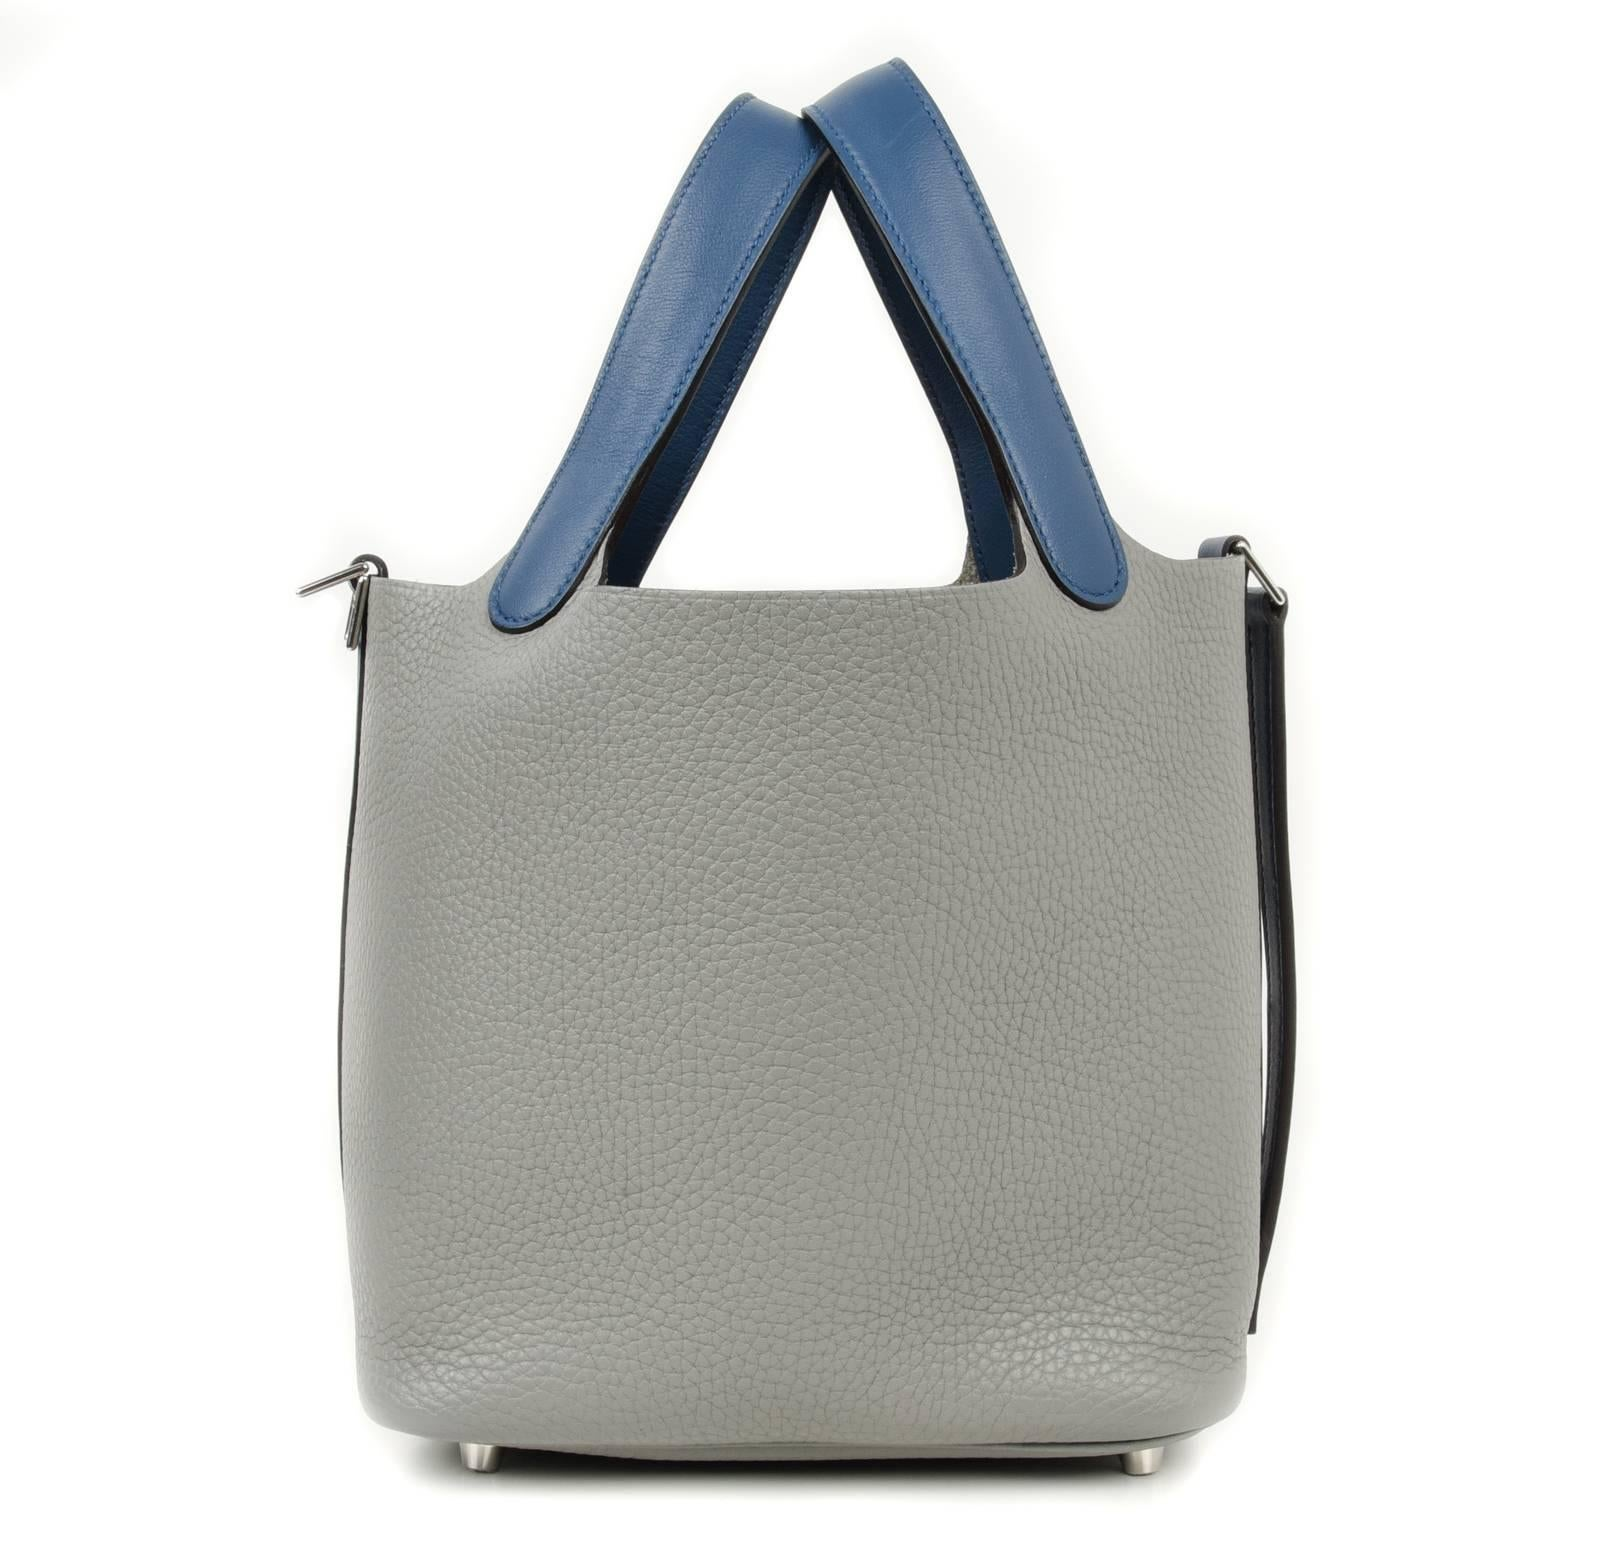 ... greece guaranteed authentic hermes picotin lock touch 18cm limited  edition bi color bag in gris mouette ... 7776adeedd